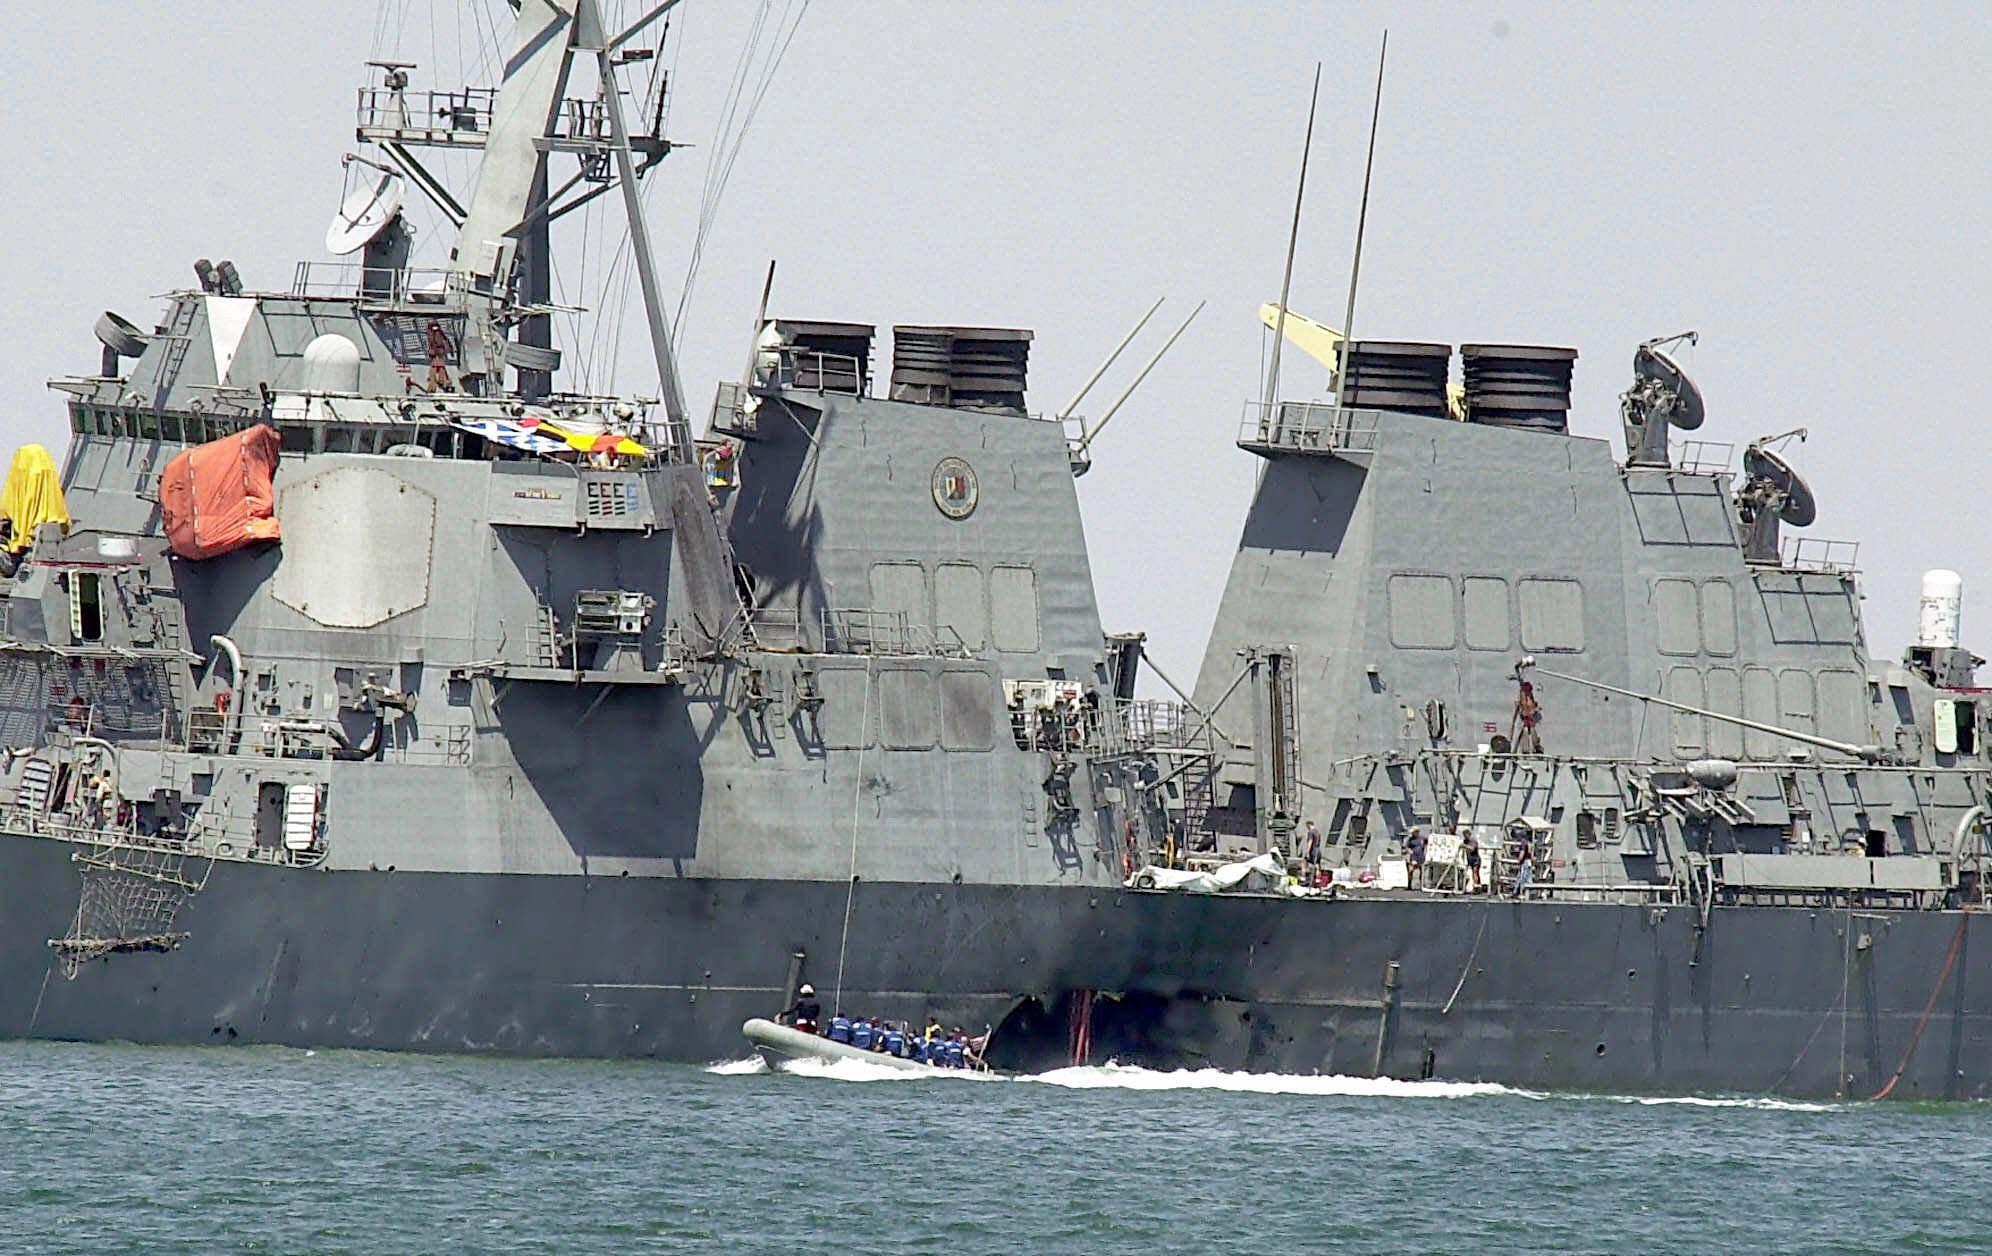 Image: Investigators in a speed boat examine the hull of the USS Cole at the Yemeni port of Aden